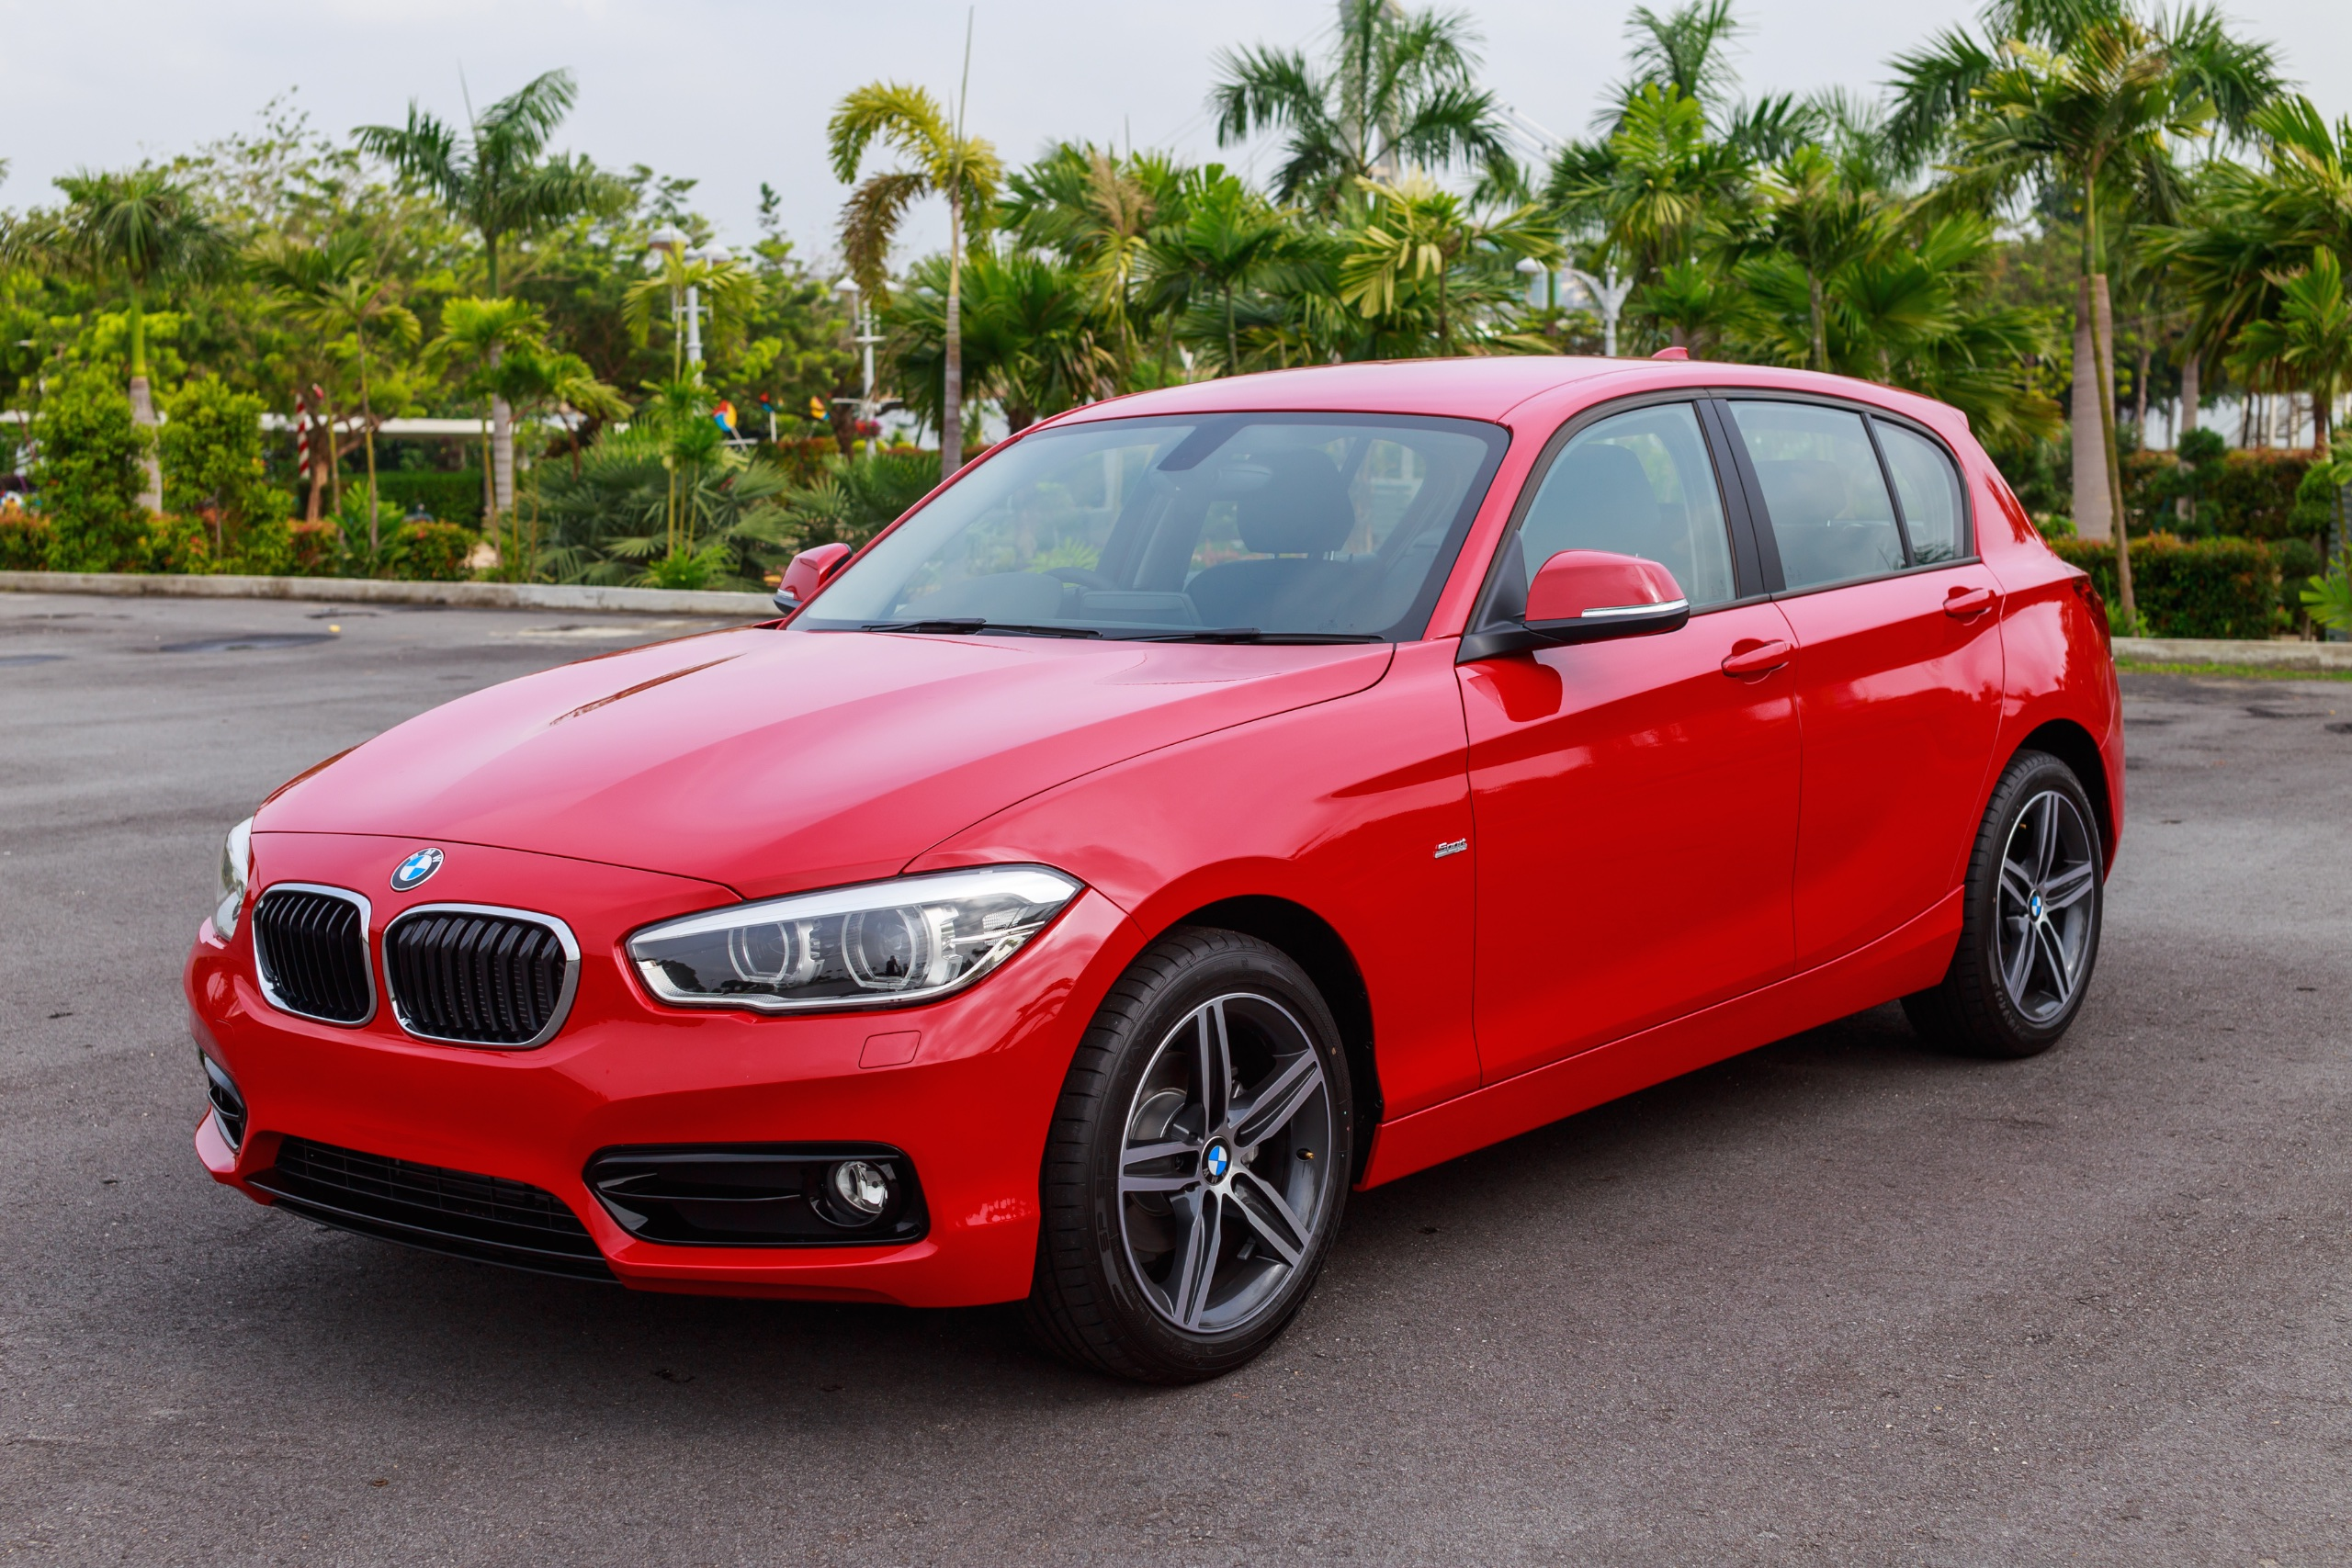 bmw 118i sport now in malaysia 3 cyl 1 5l rm189k image 410256. Black Bedroom Furniture Sets. Home Design Ideas